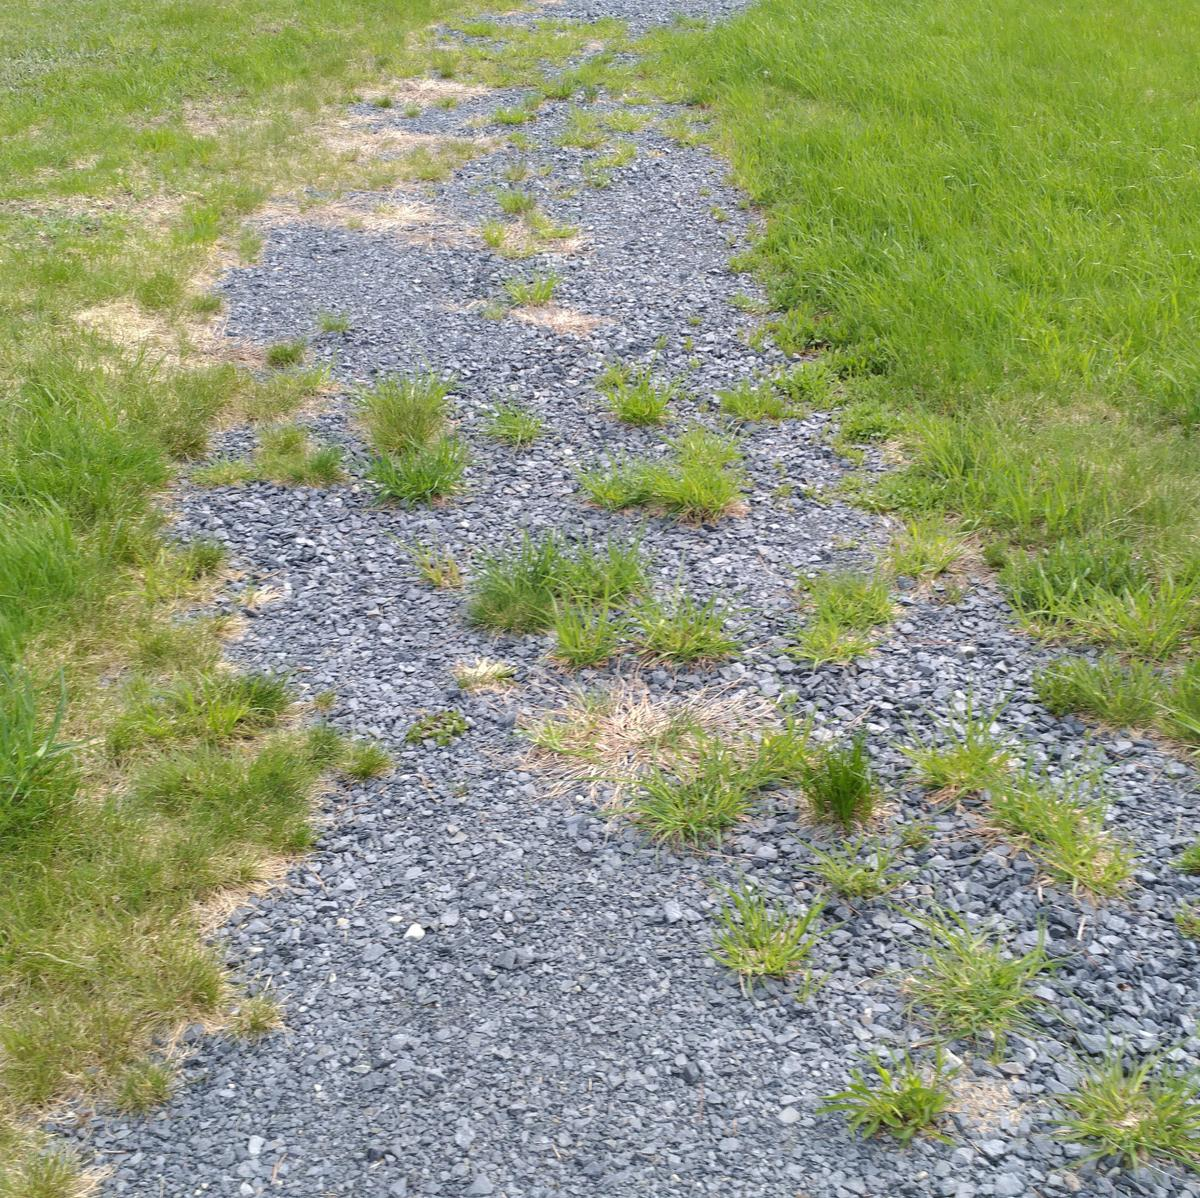 Gravel surface with grass encroachment